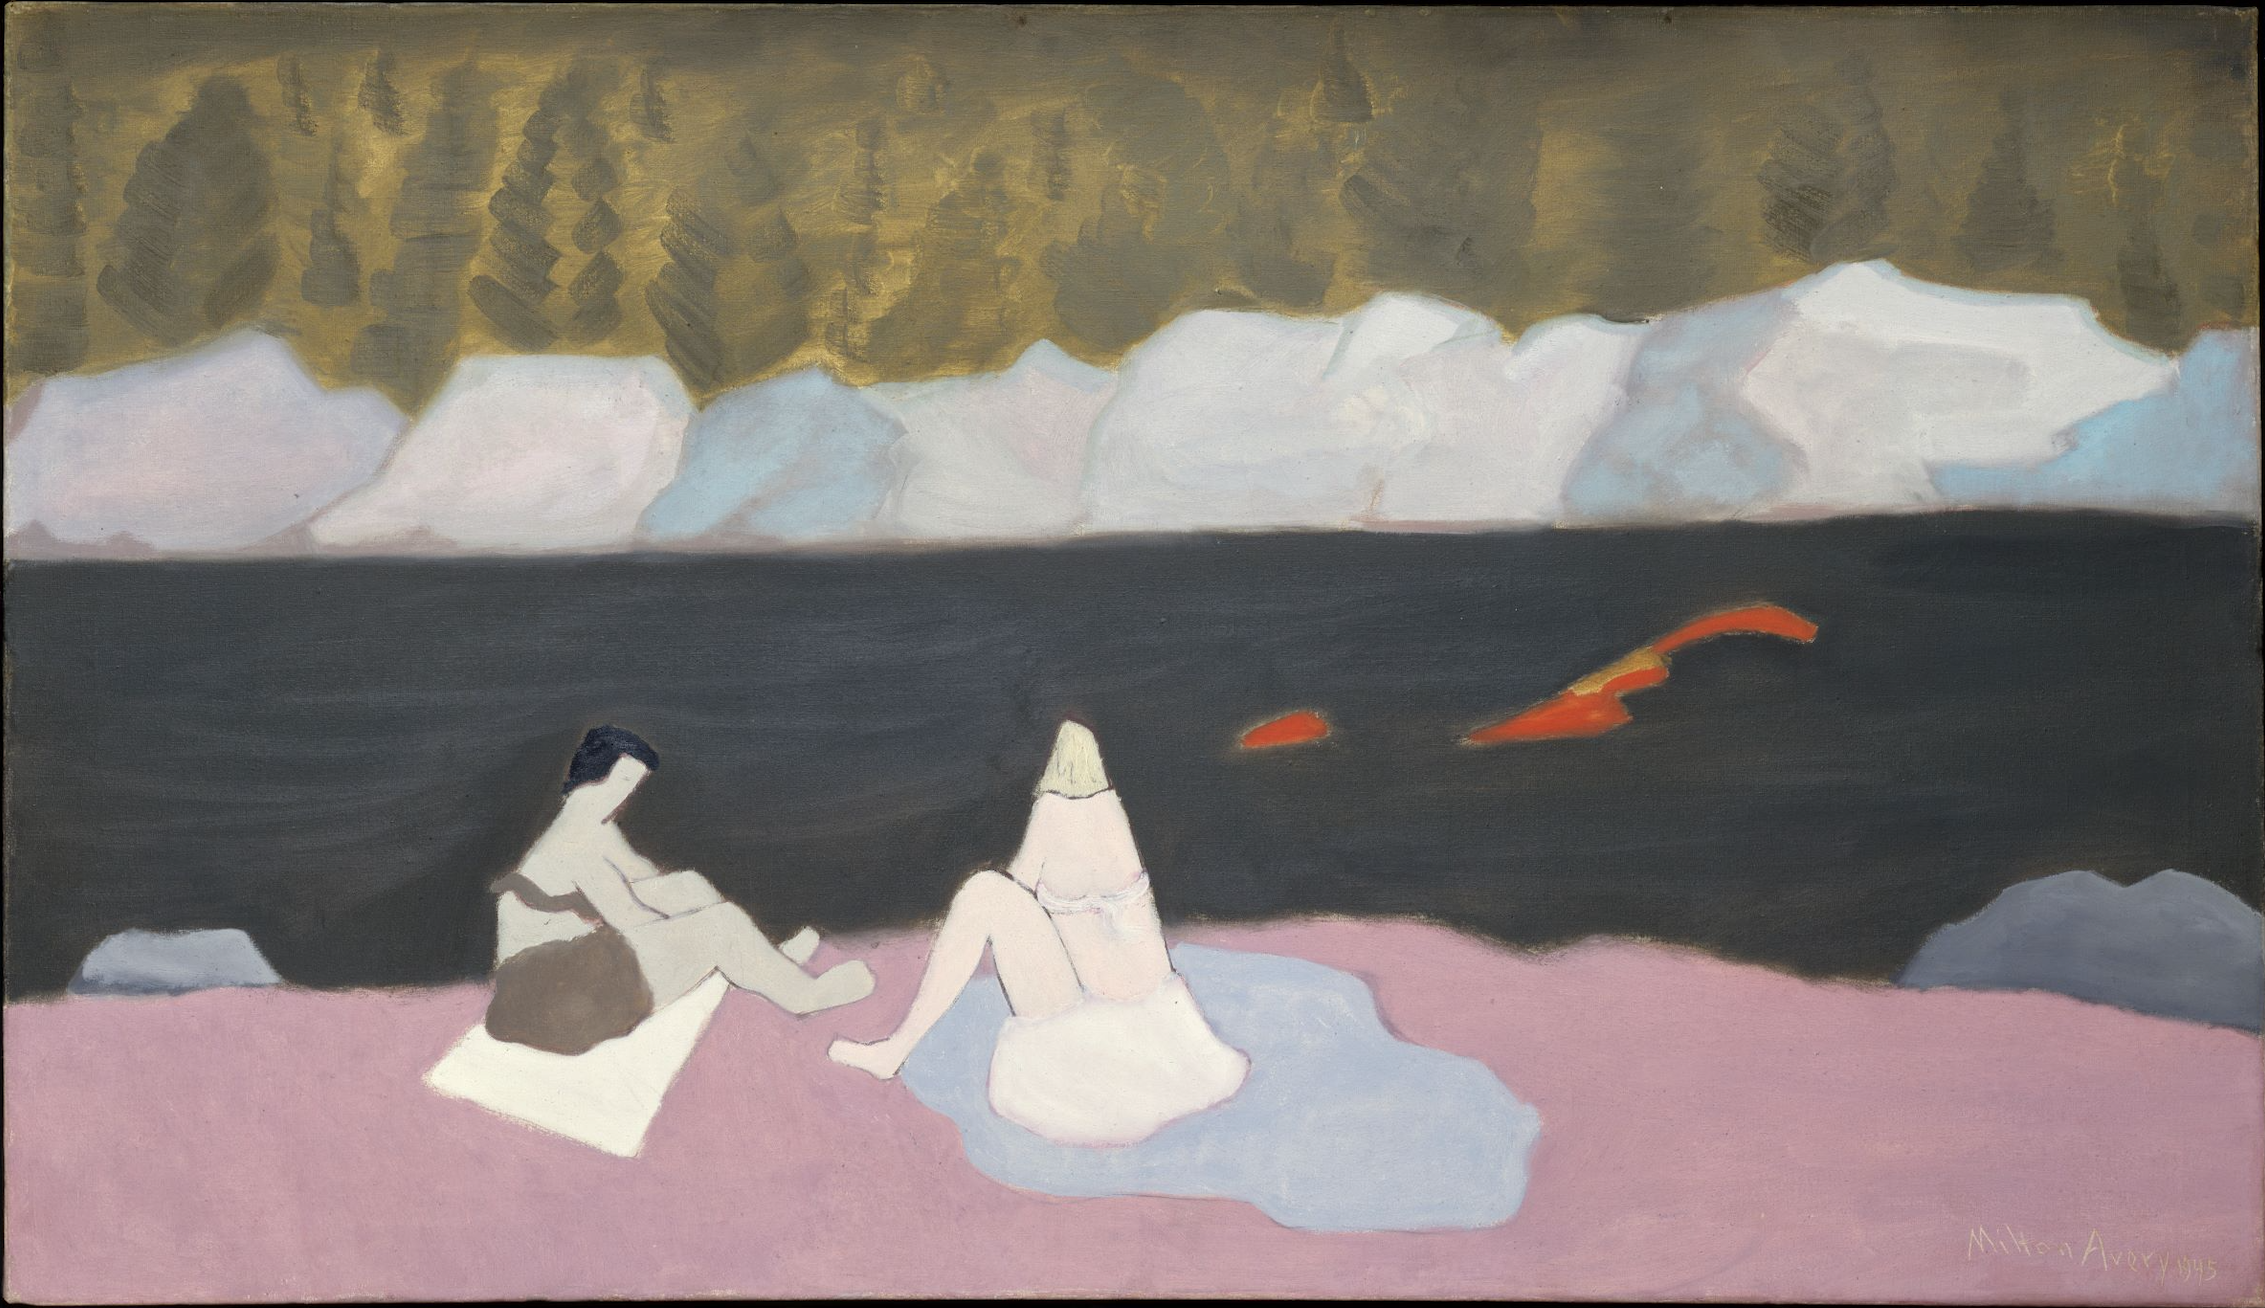 Milton Avery (American, 1885-1965). Swimmers and Sunbathers, 1945. Oil on canvas, 28 x 48 1/4 in. The Metropolitan    Museum of Art, Gift of Mr. and Mrs. Roy R. Neuberger, 1951 (51.97). © 2019 The Milton Avery Trust / Artists Rights Society (ARS), New York. Image copyright © The Metropolitan Museum of Art. Image source: Art Resource, NY.